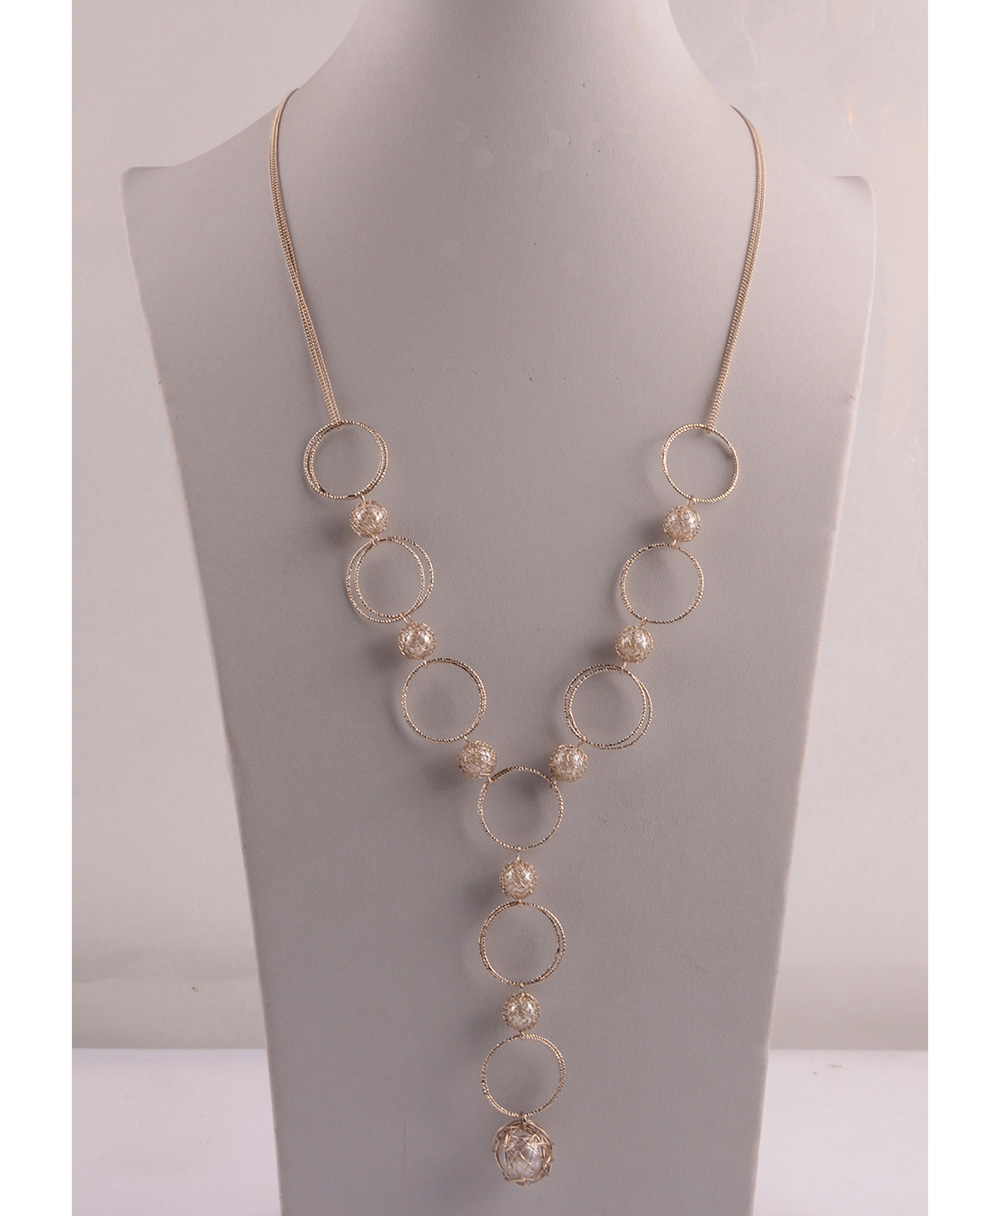 907539 Lady Long Necklace